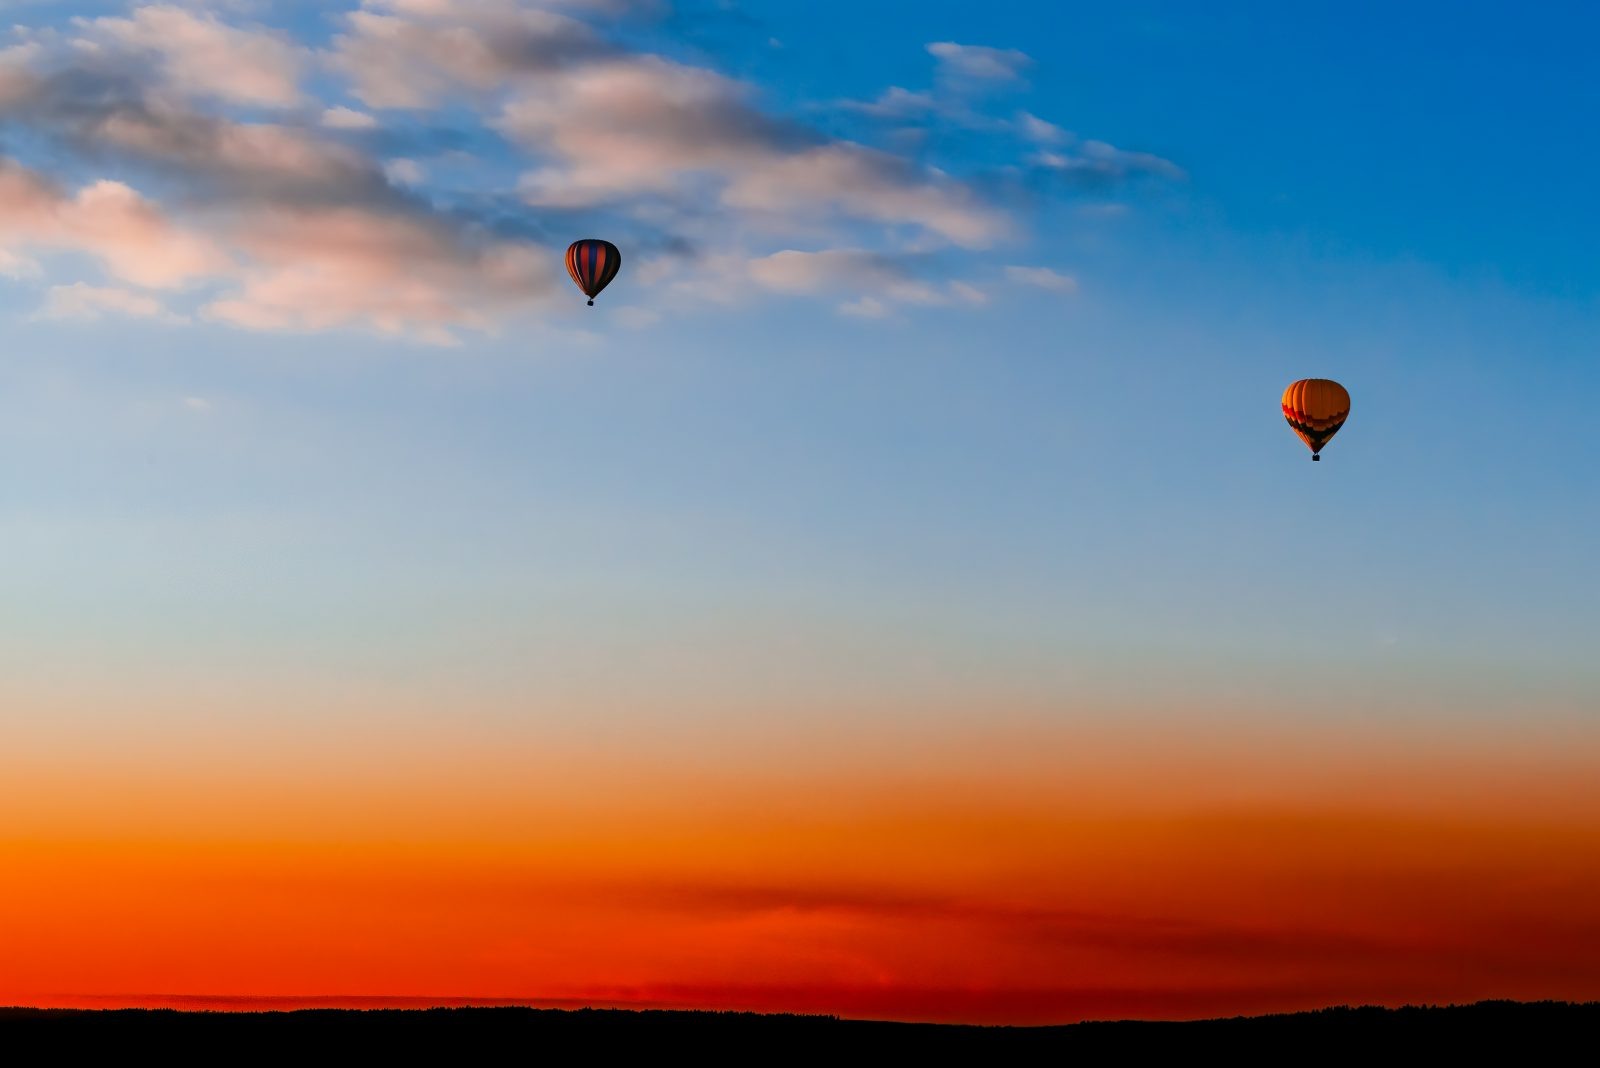 Summer Ballooning at Sunset